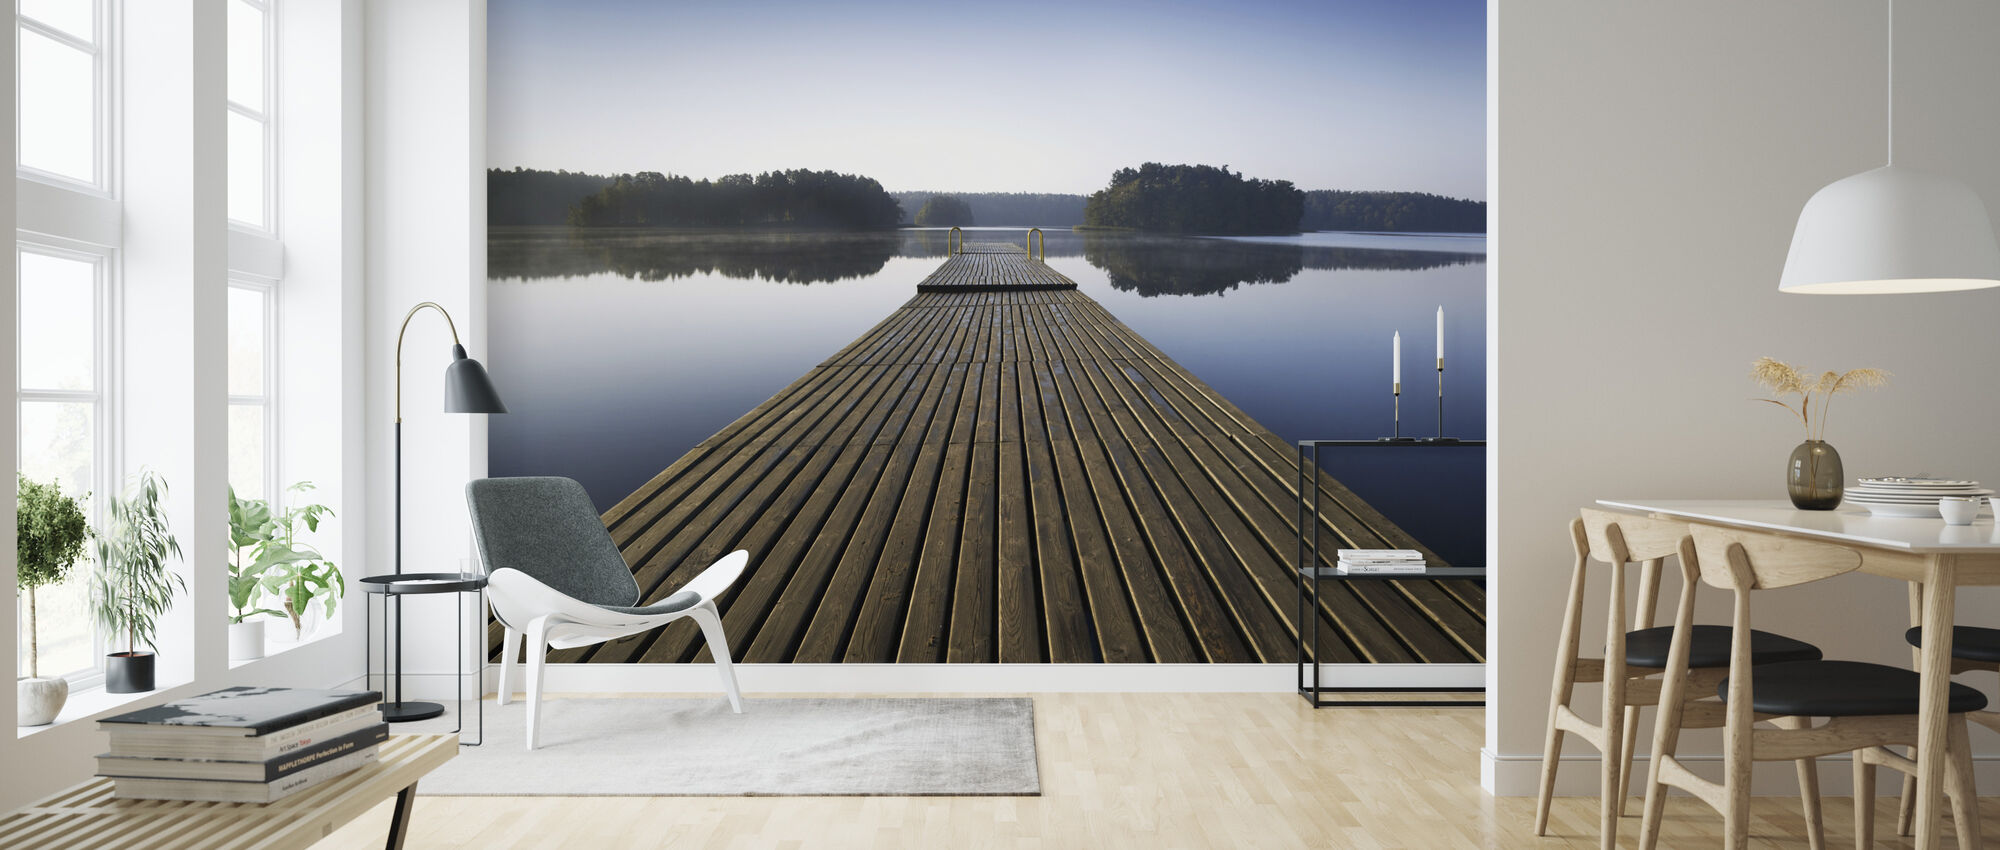 Wooden Pier at Morning - Wallpaper - Living Room